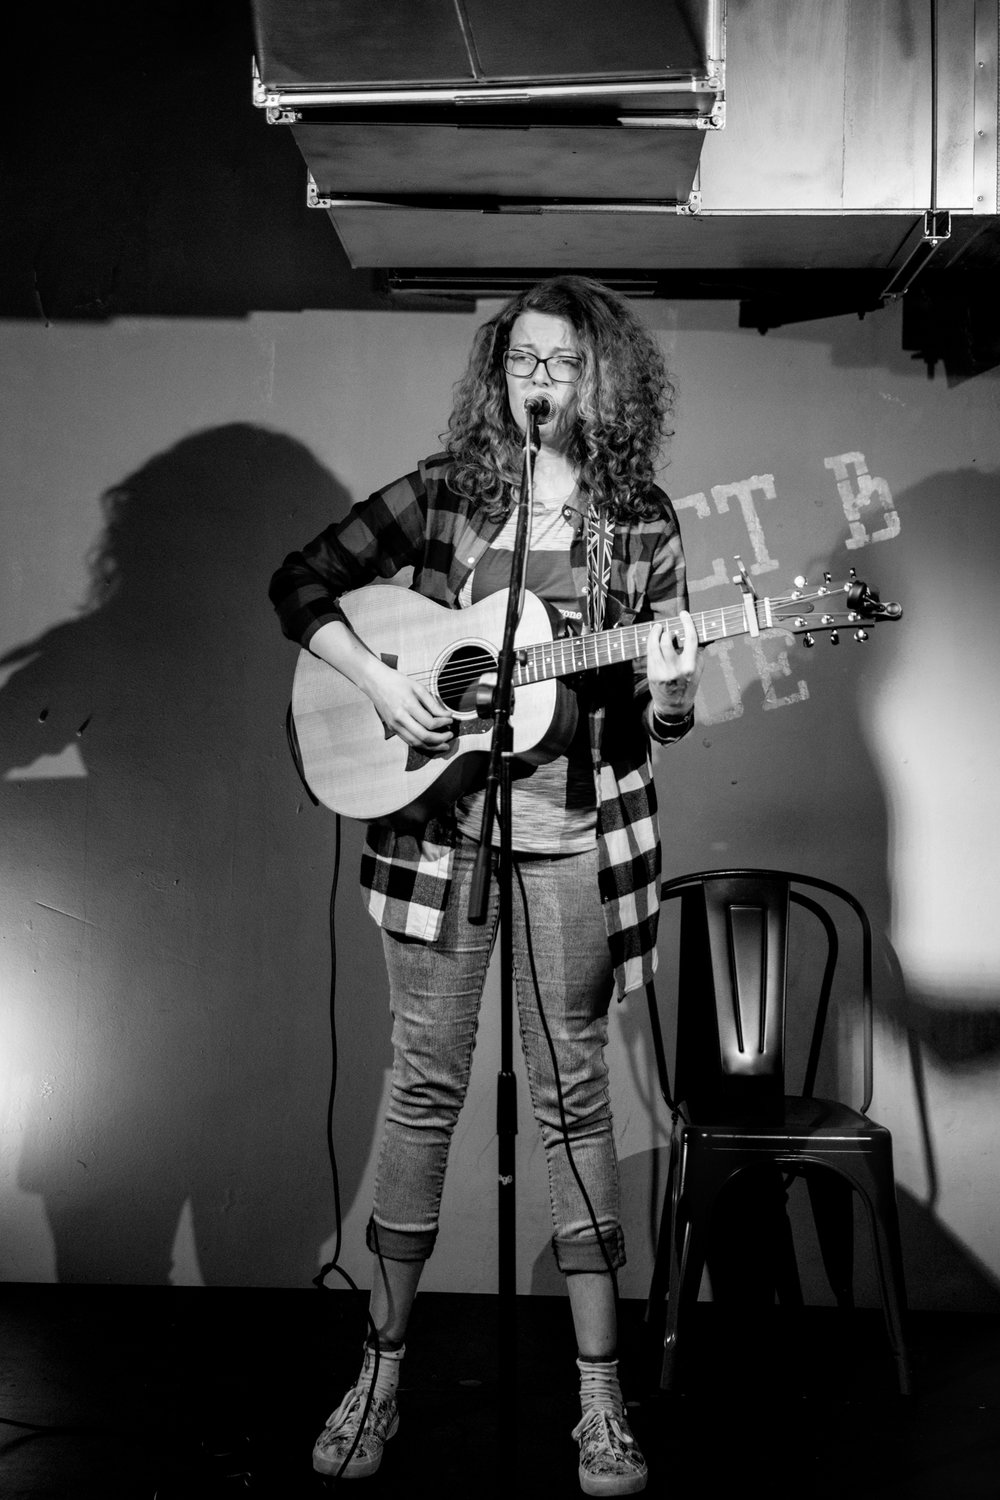 London Open Mic Night Chloe Ray Long Island Photographer-58.jpg